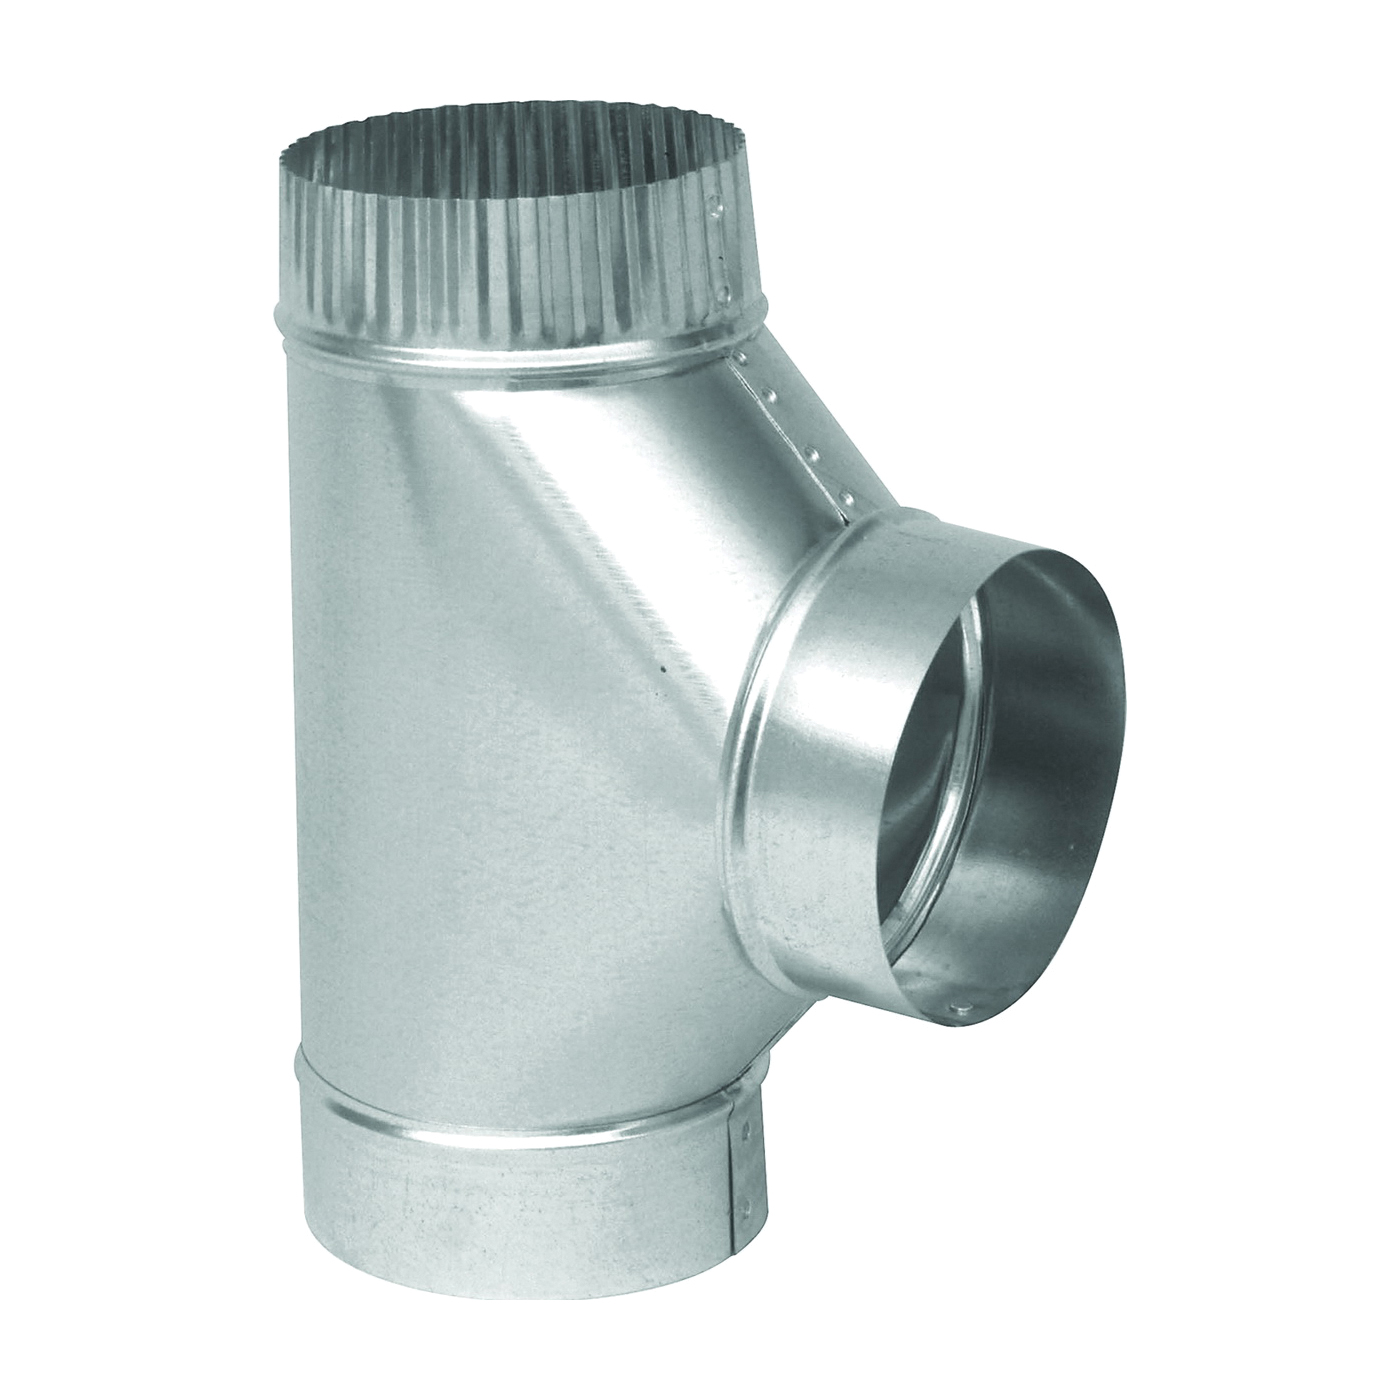 Picture of Imperial GV0895 Tee, 7 in, 26 Gauge, Galvanized Steel